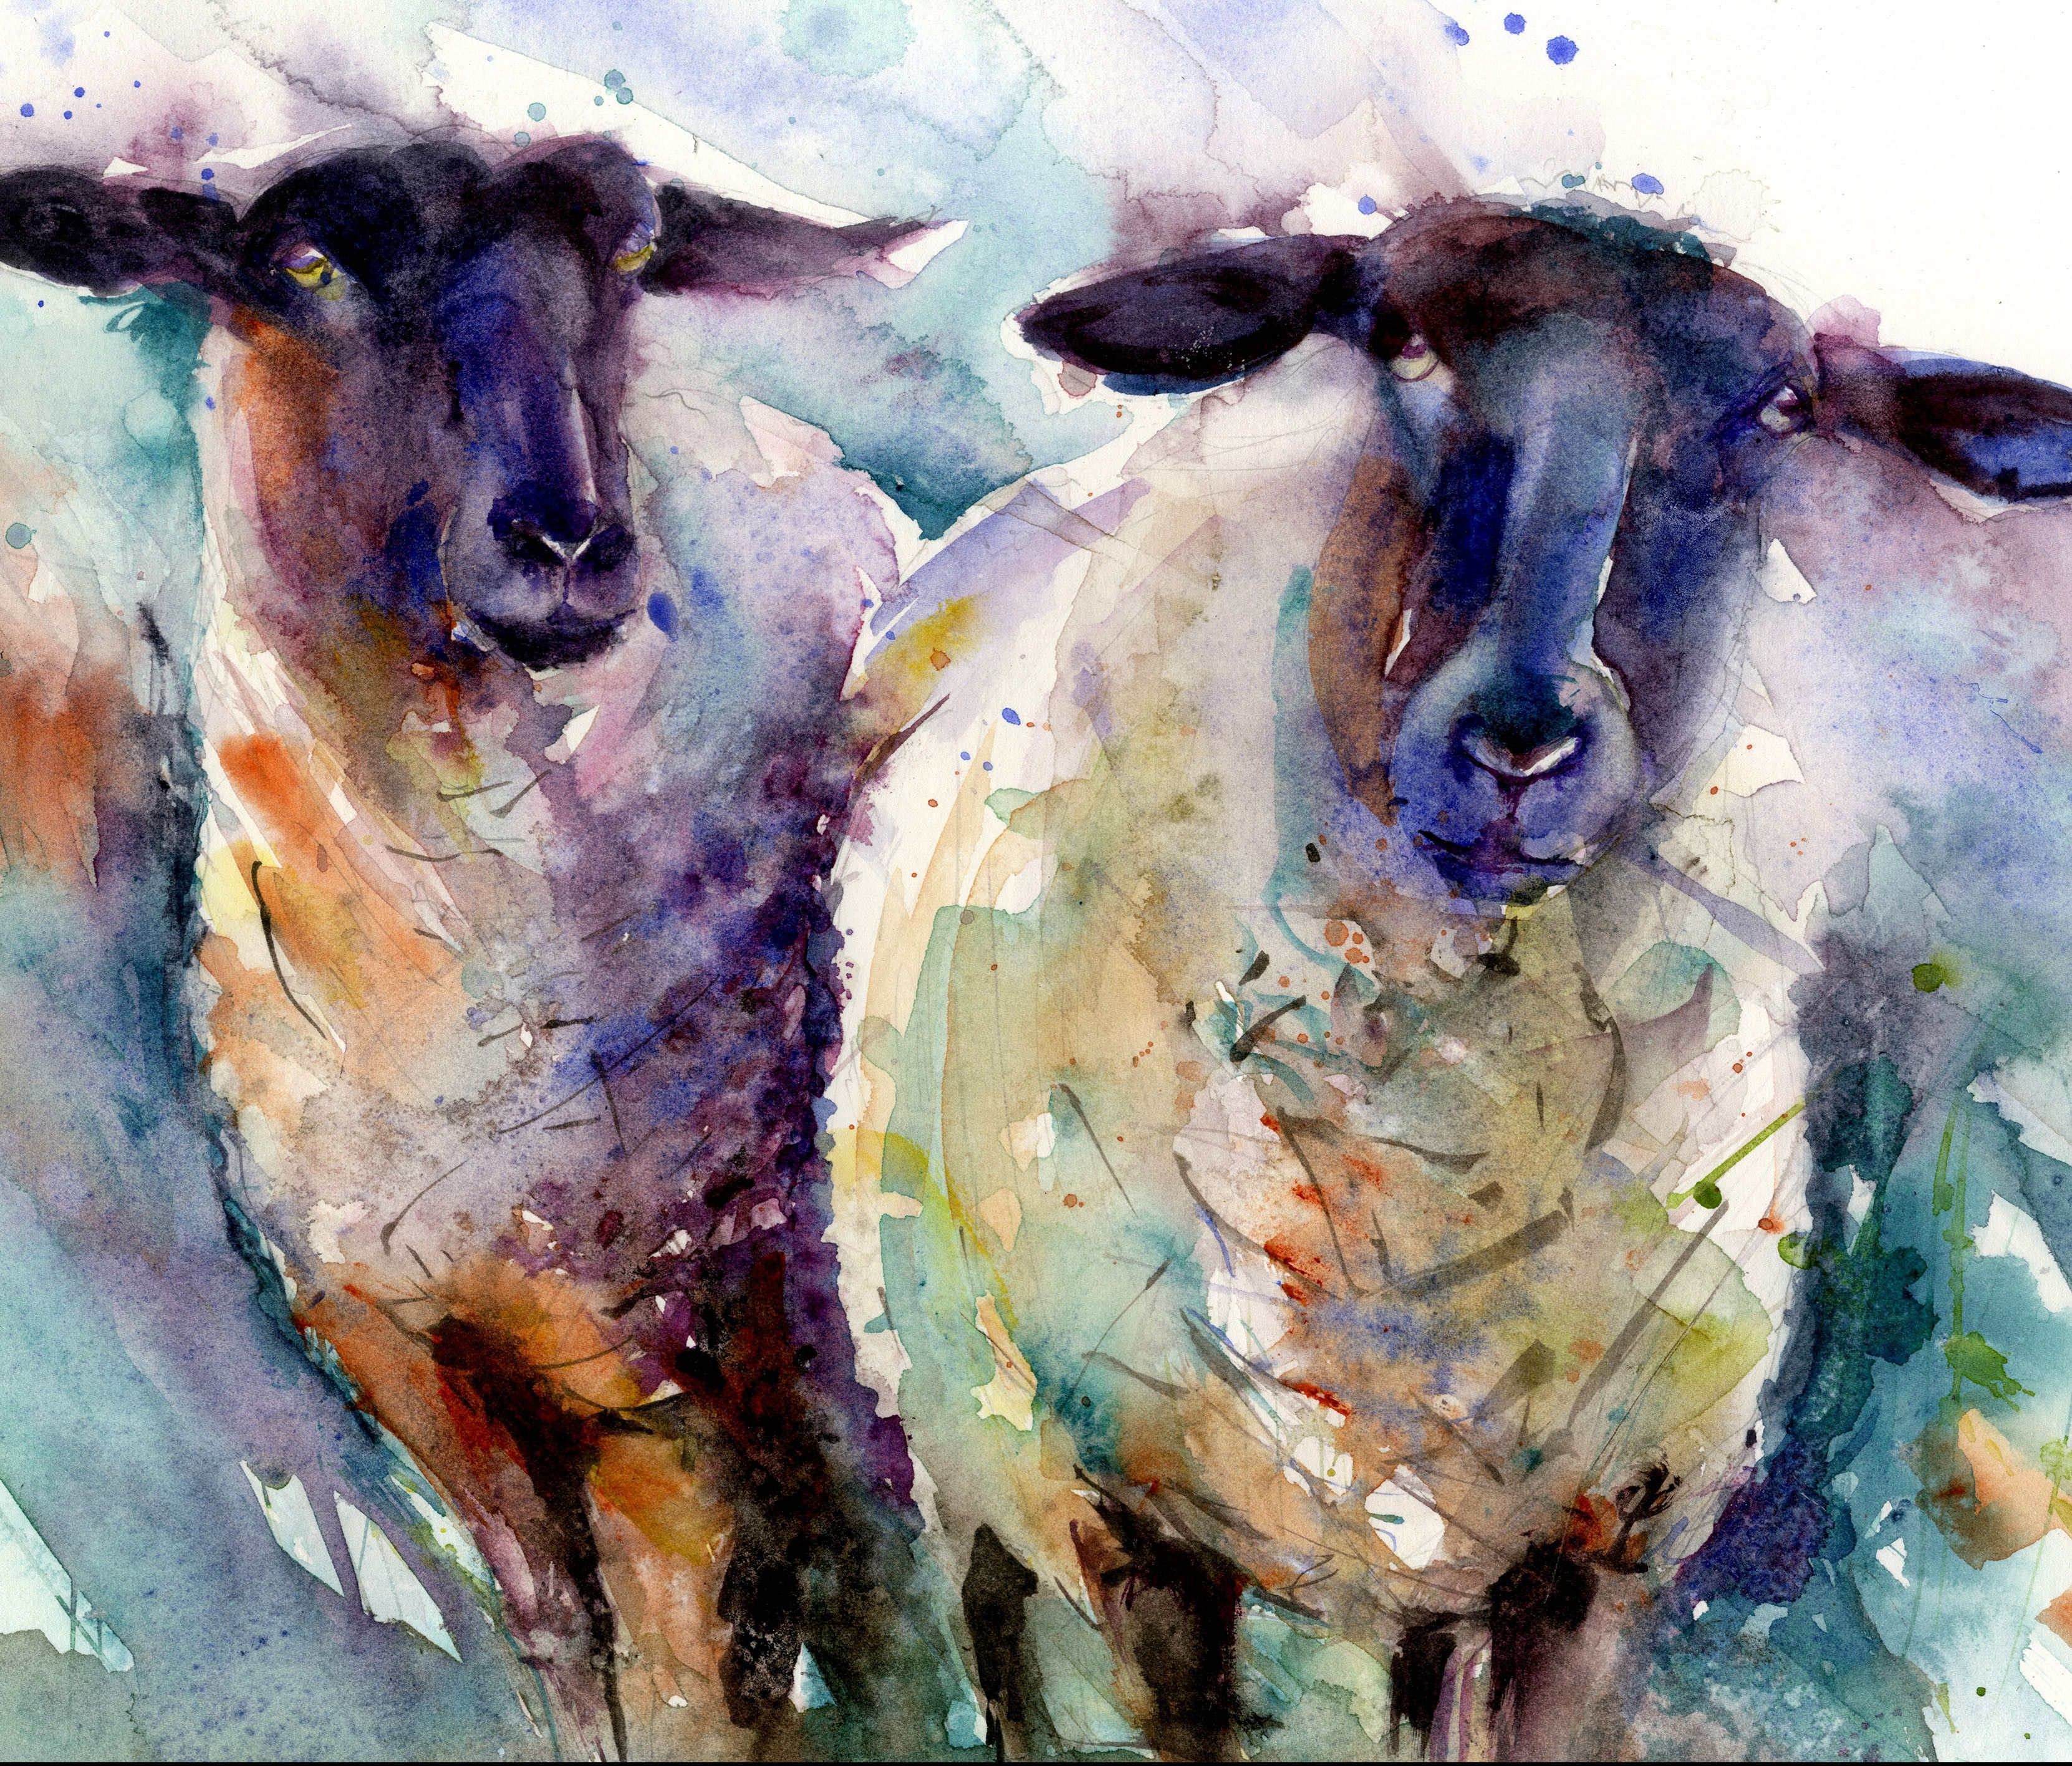 LIMITED EDITION PRINT of original 2 ewes sheep painting